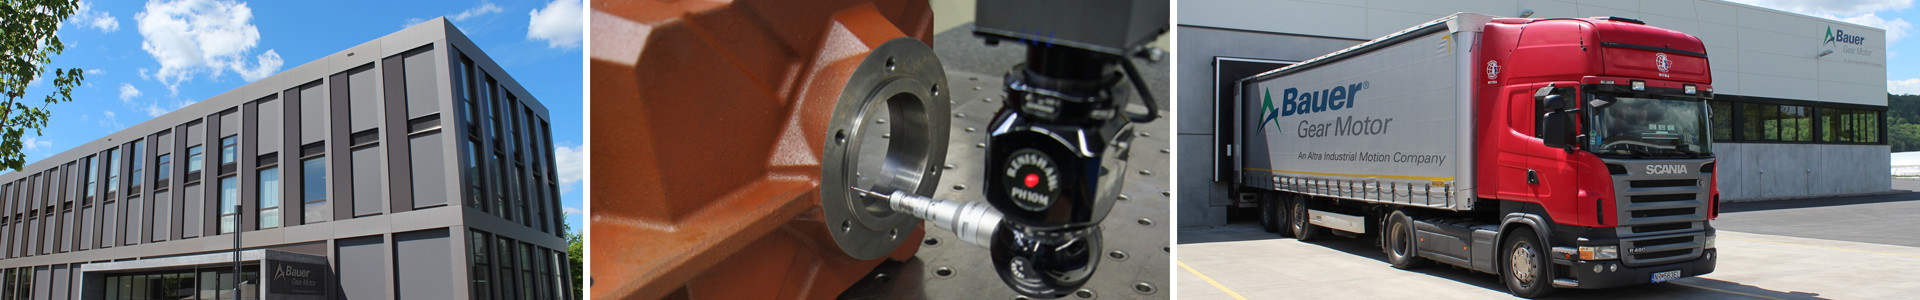 Company Overview Bauer Gear Motor